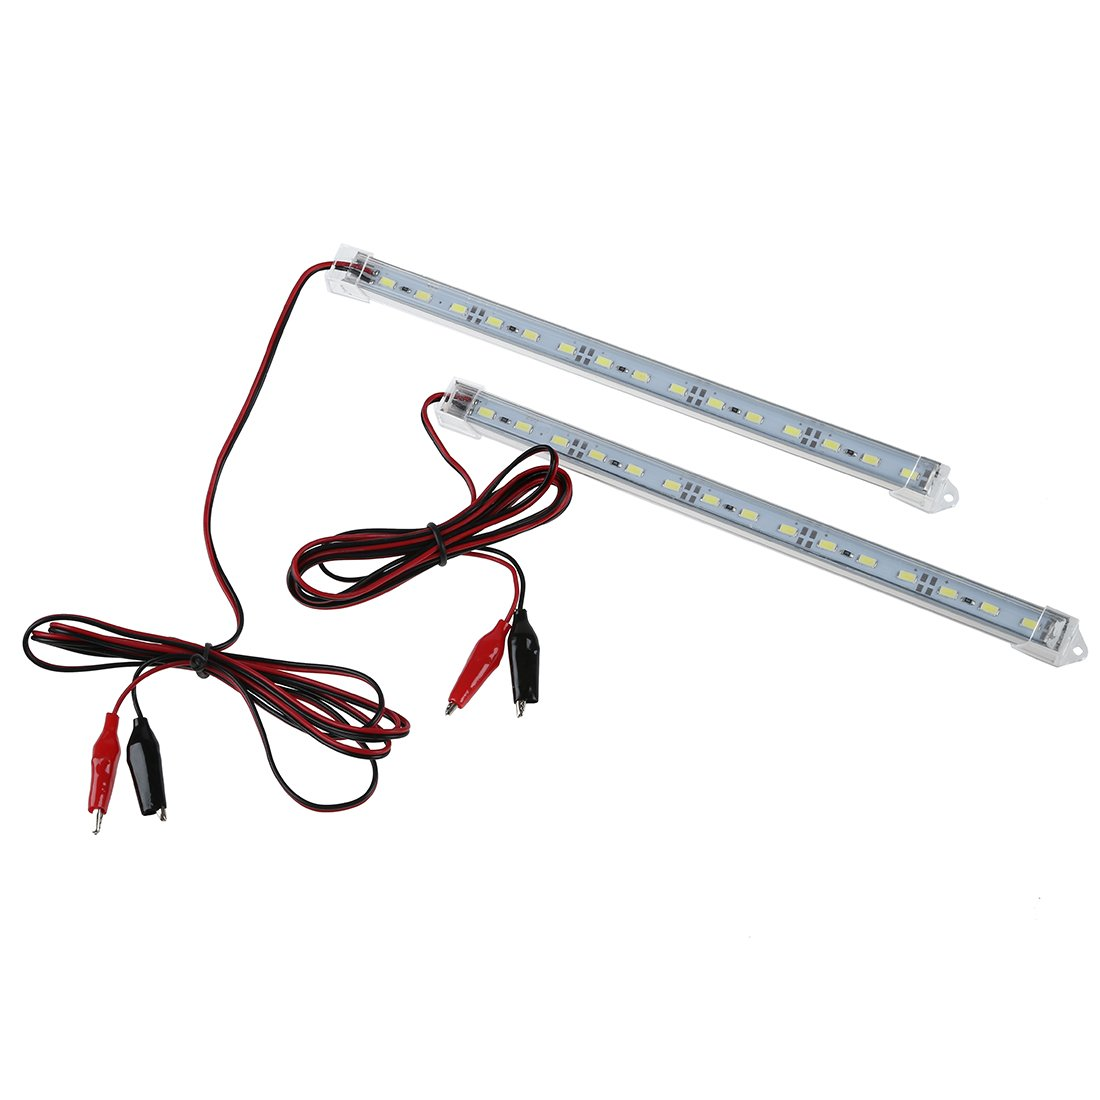 VYNBDA 2pc 12V Car 15 LED 5630 SMD Luz de tira Interior Lampara Bar Camioneta Caravana Pecera